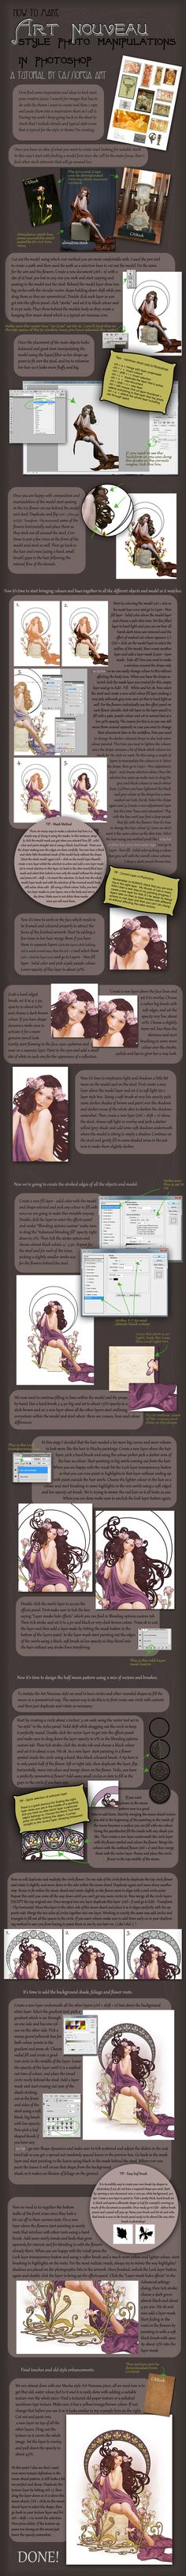 Art Nouveau Tutorial by *CassiopeiaArt on deviantART, possible photoshop techniques for fairy tales.